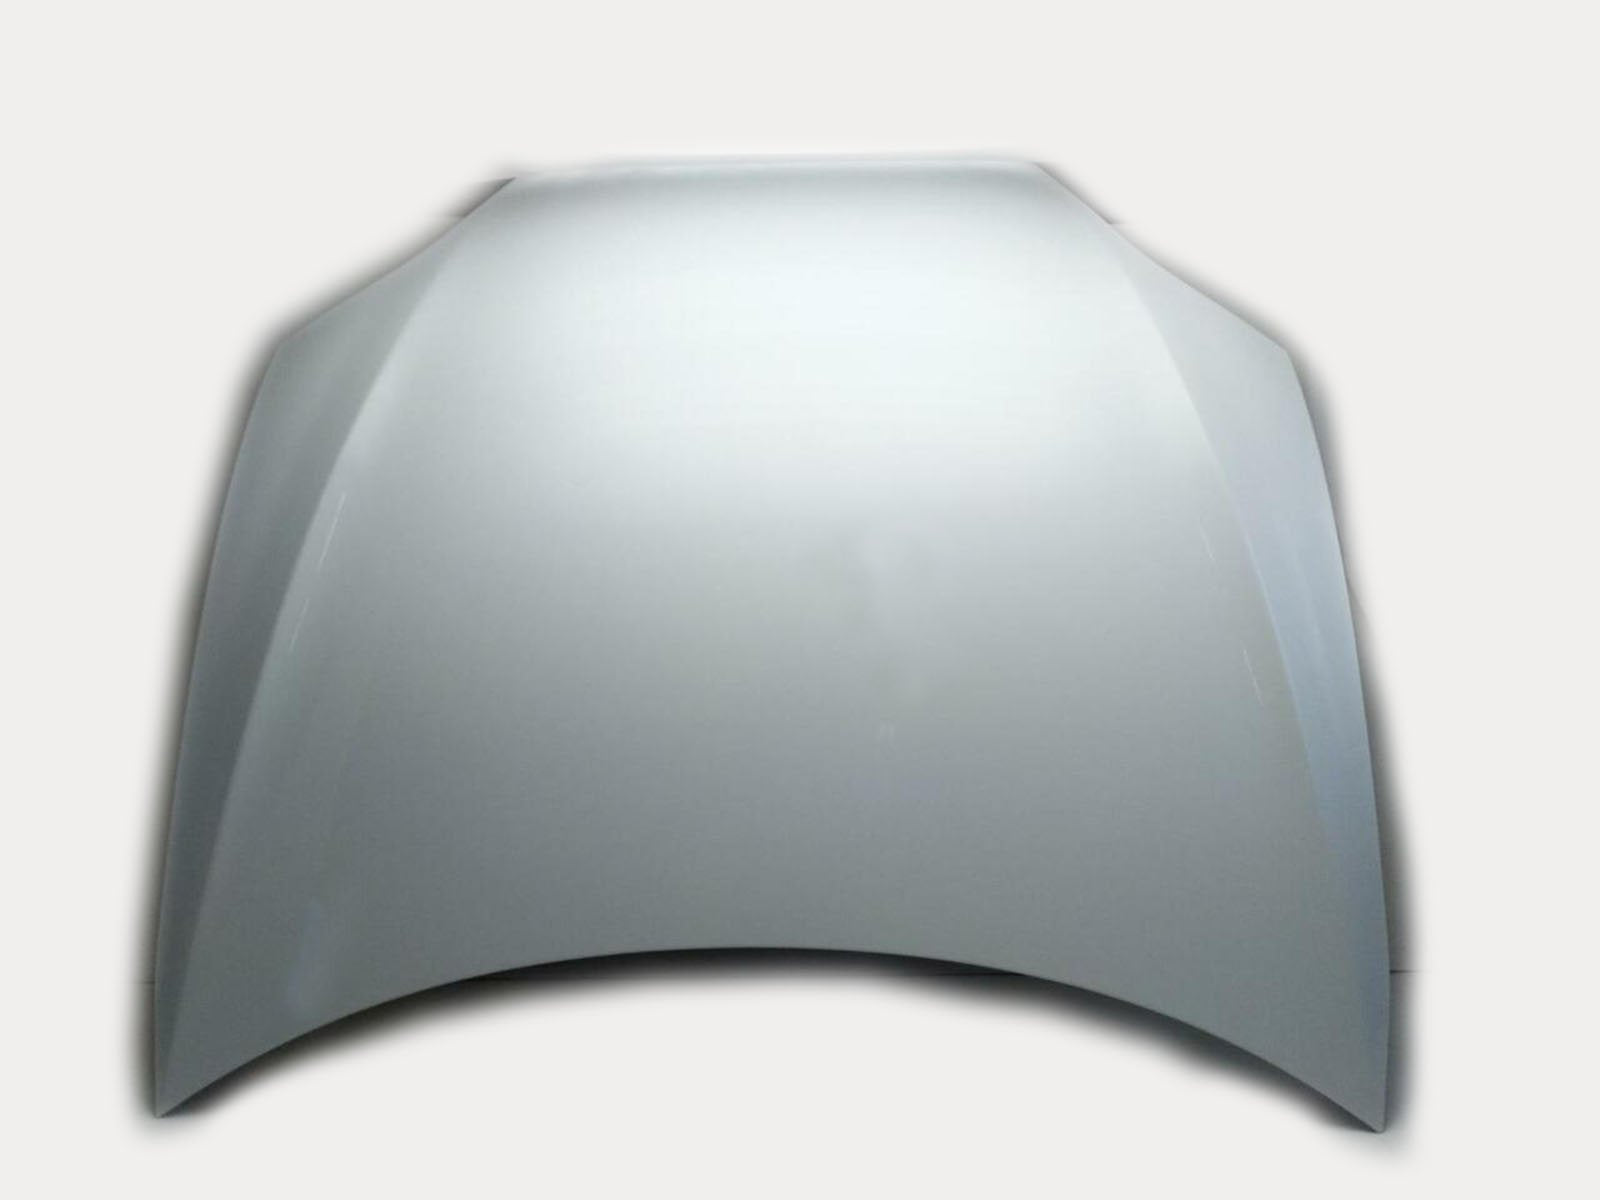 Model S: Front Hood Bonnet, Frunk Panel Cover (1038384-S0-C,1038384 S0 C,1038384S0C) - Torque Alliance